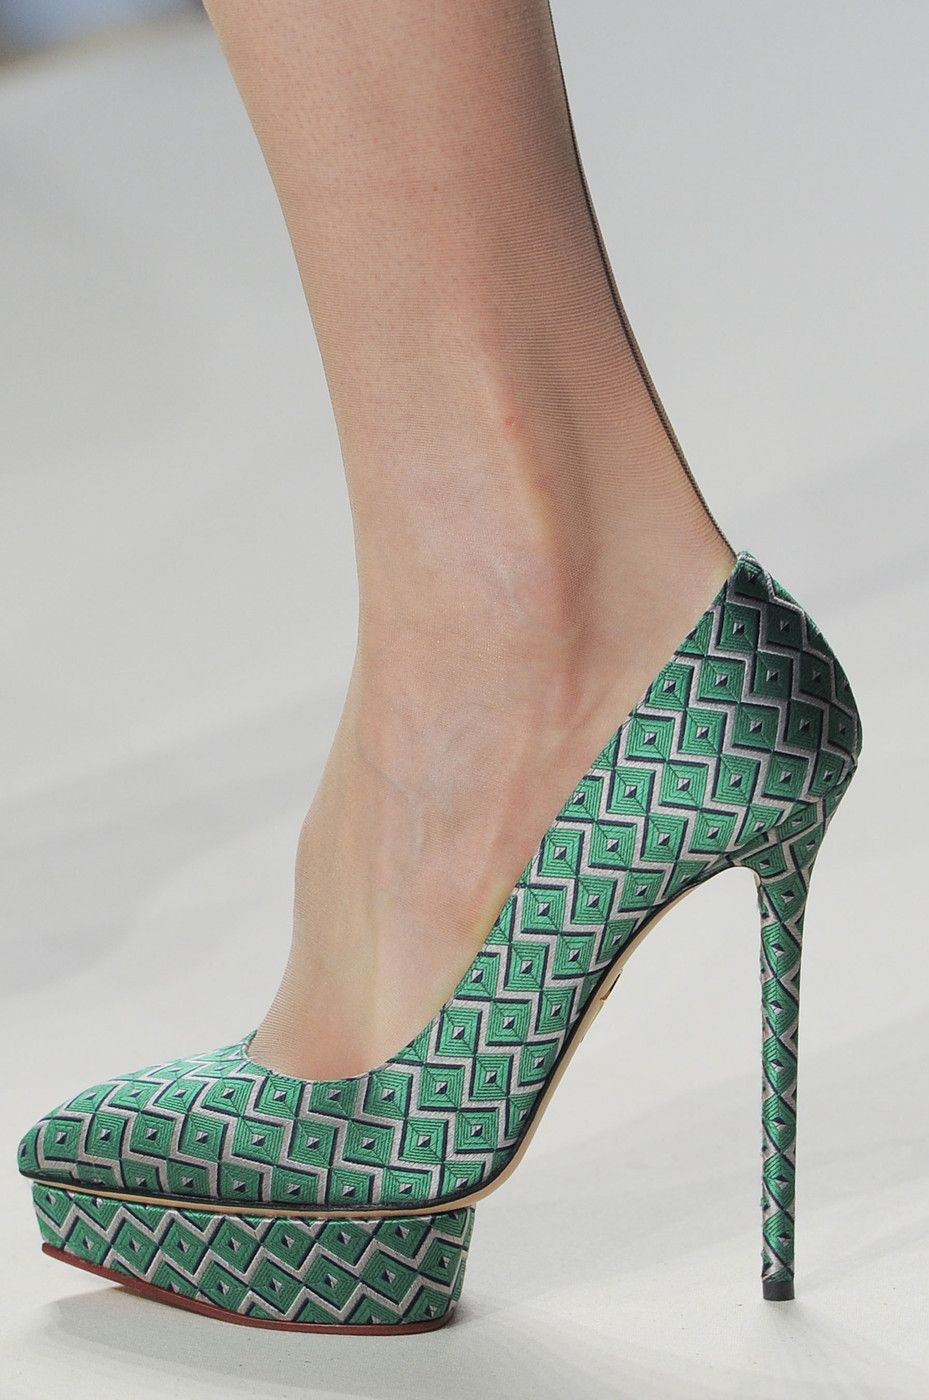 Charlotte Olympia for Temperley London Fall 2013